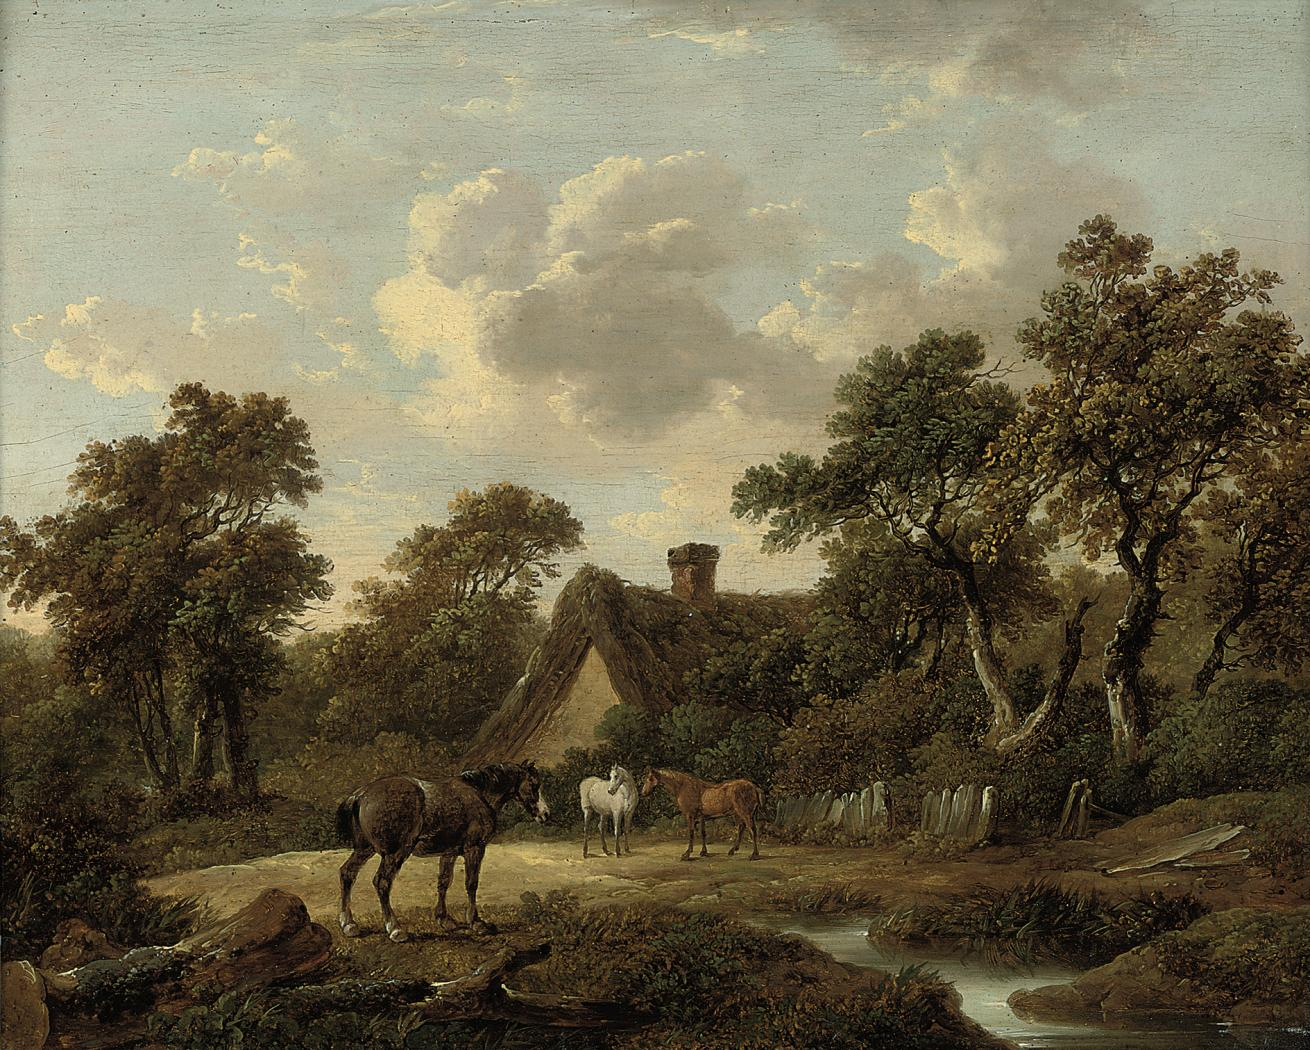 Horses before a country cottage